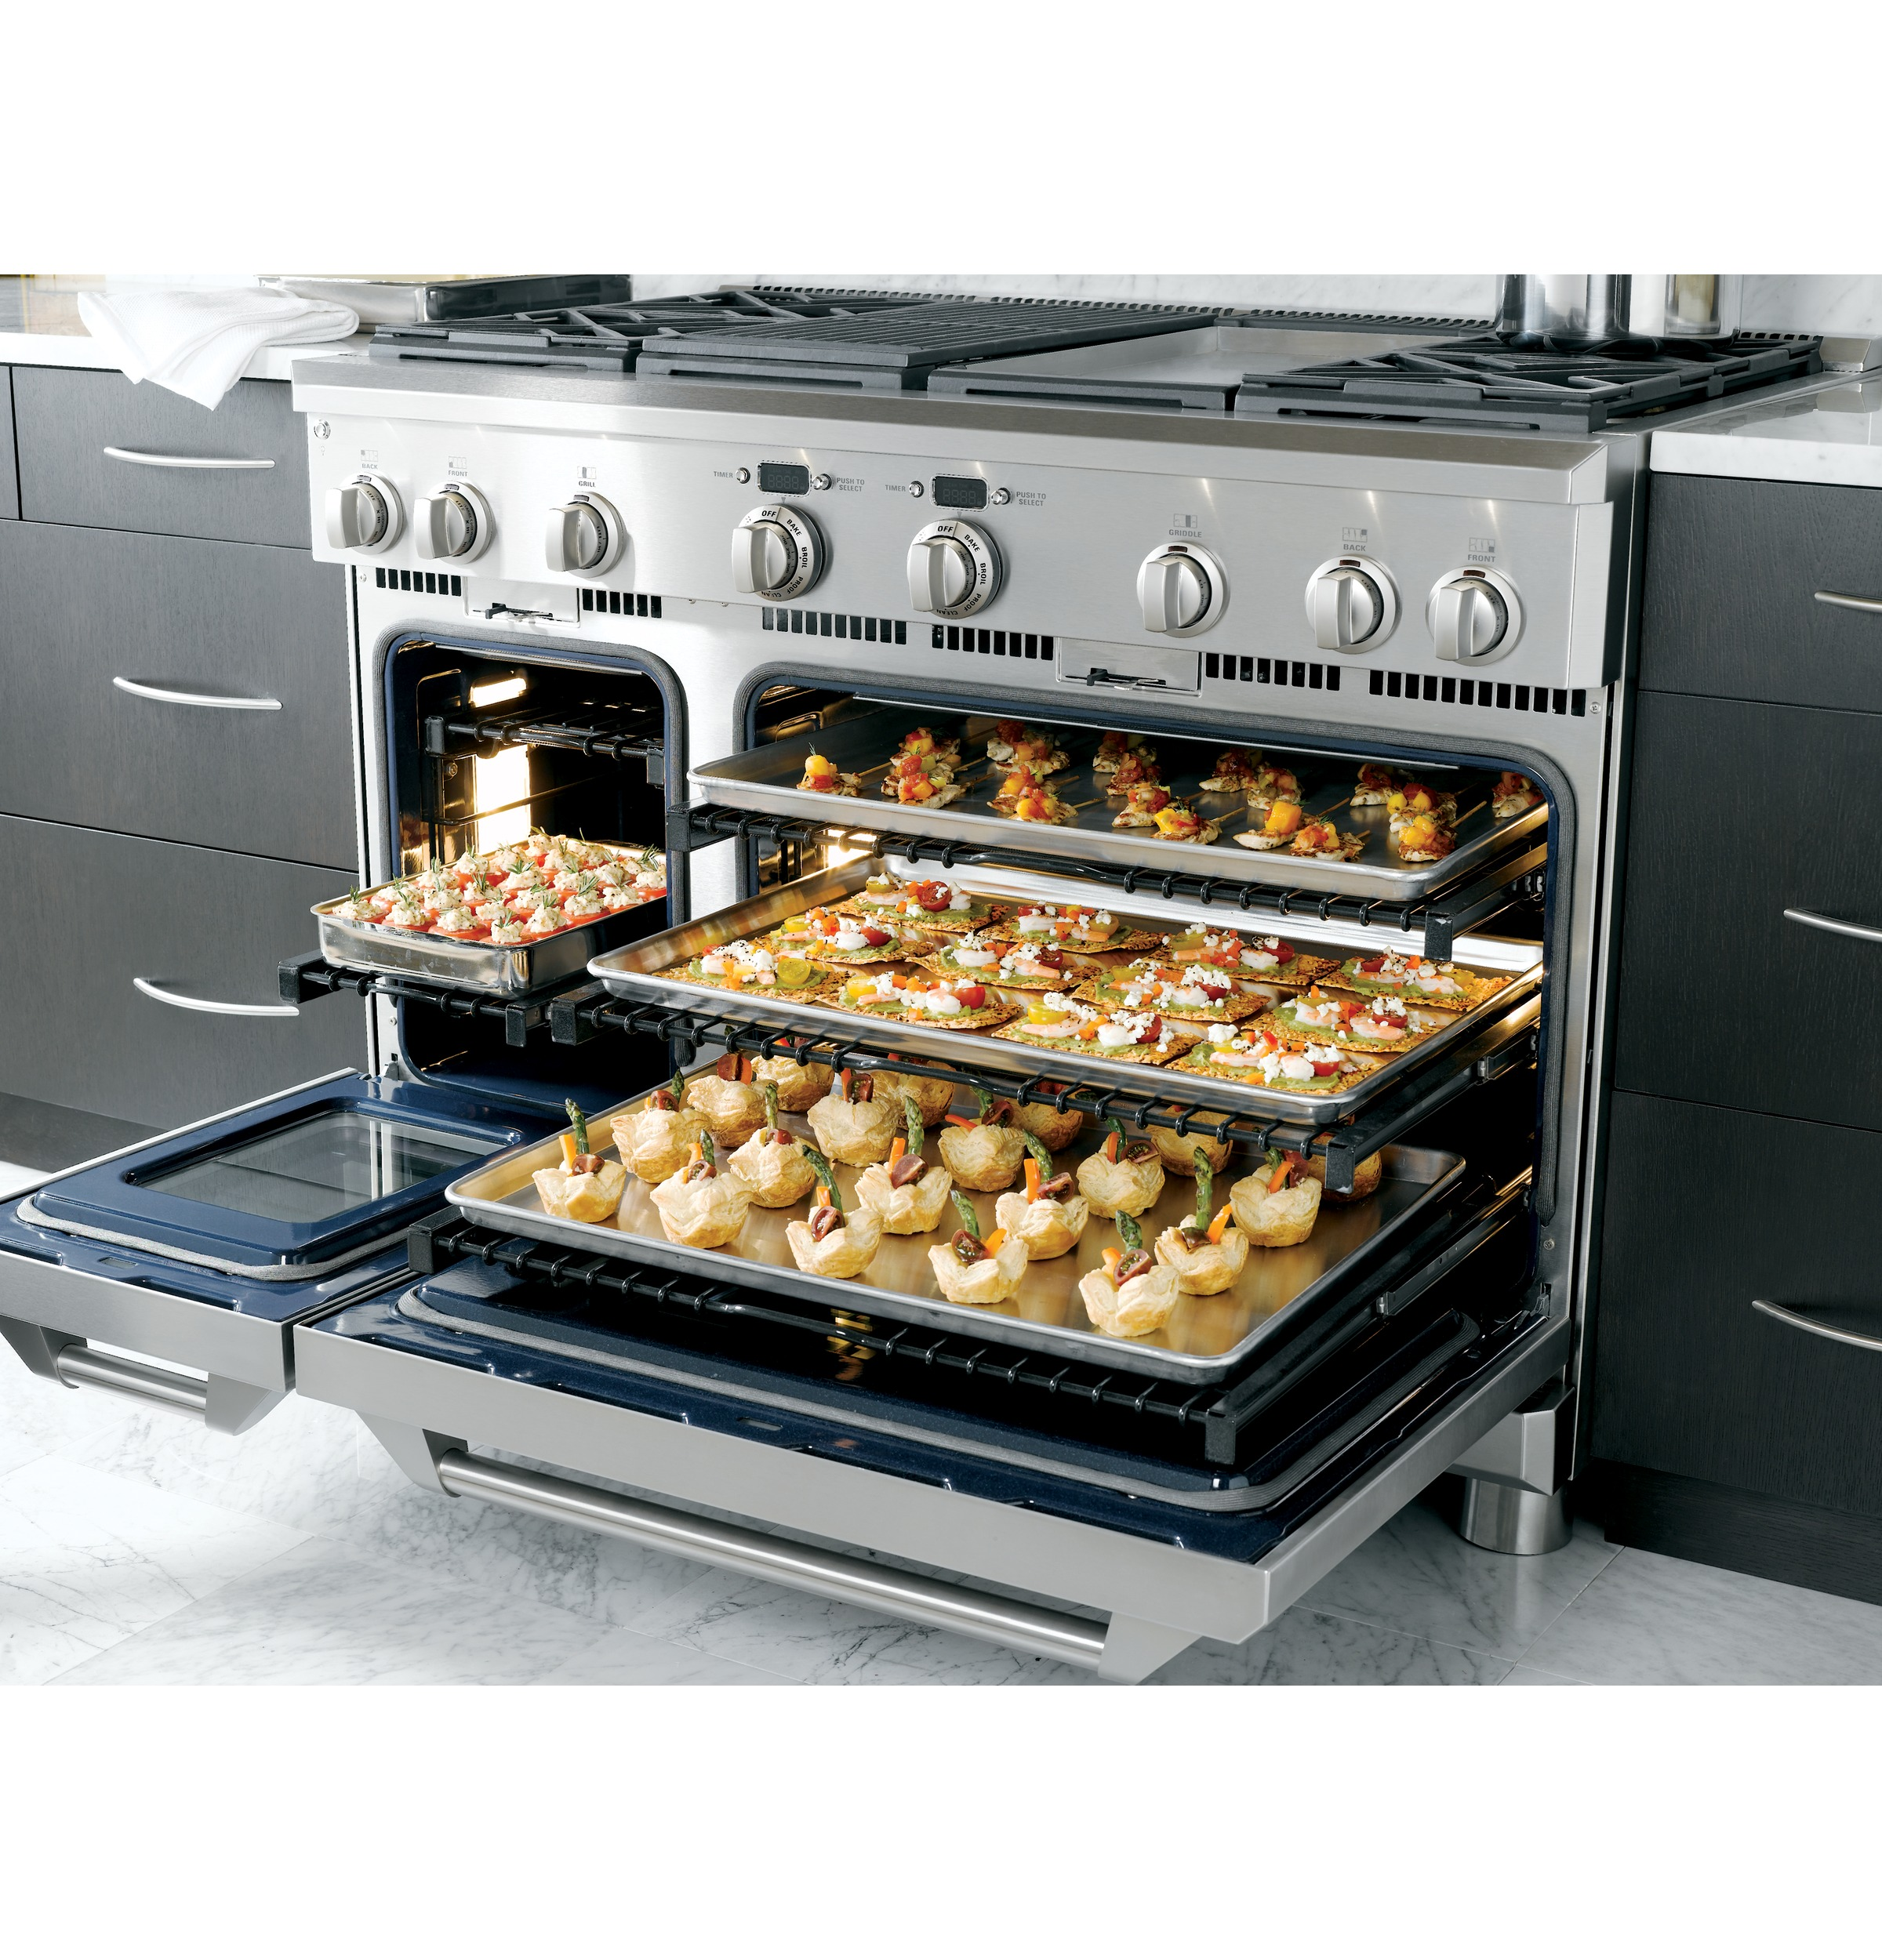 Professional Electric Ranges For The Home Monogram 48 Dual Fuel Professional Range With 4 Burners Grill